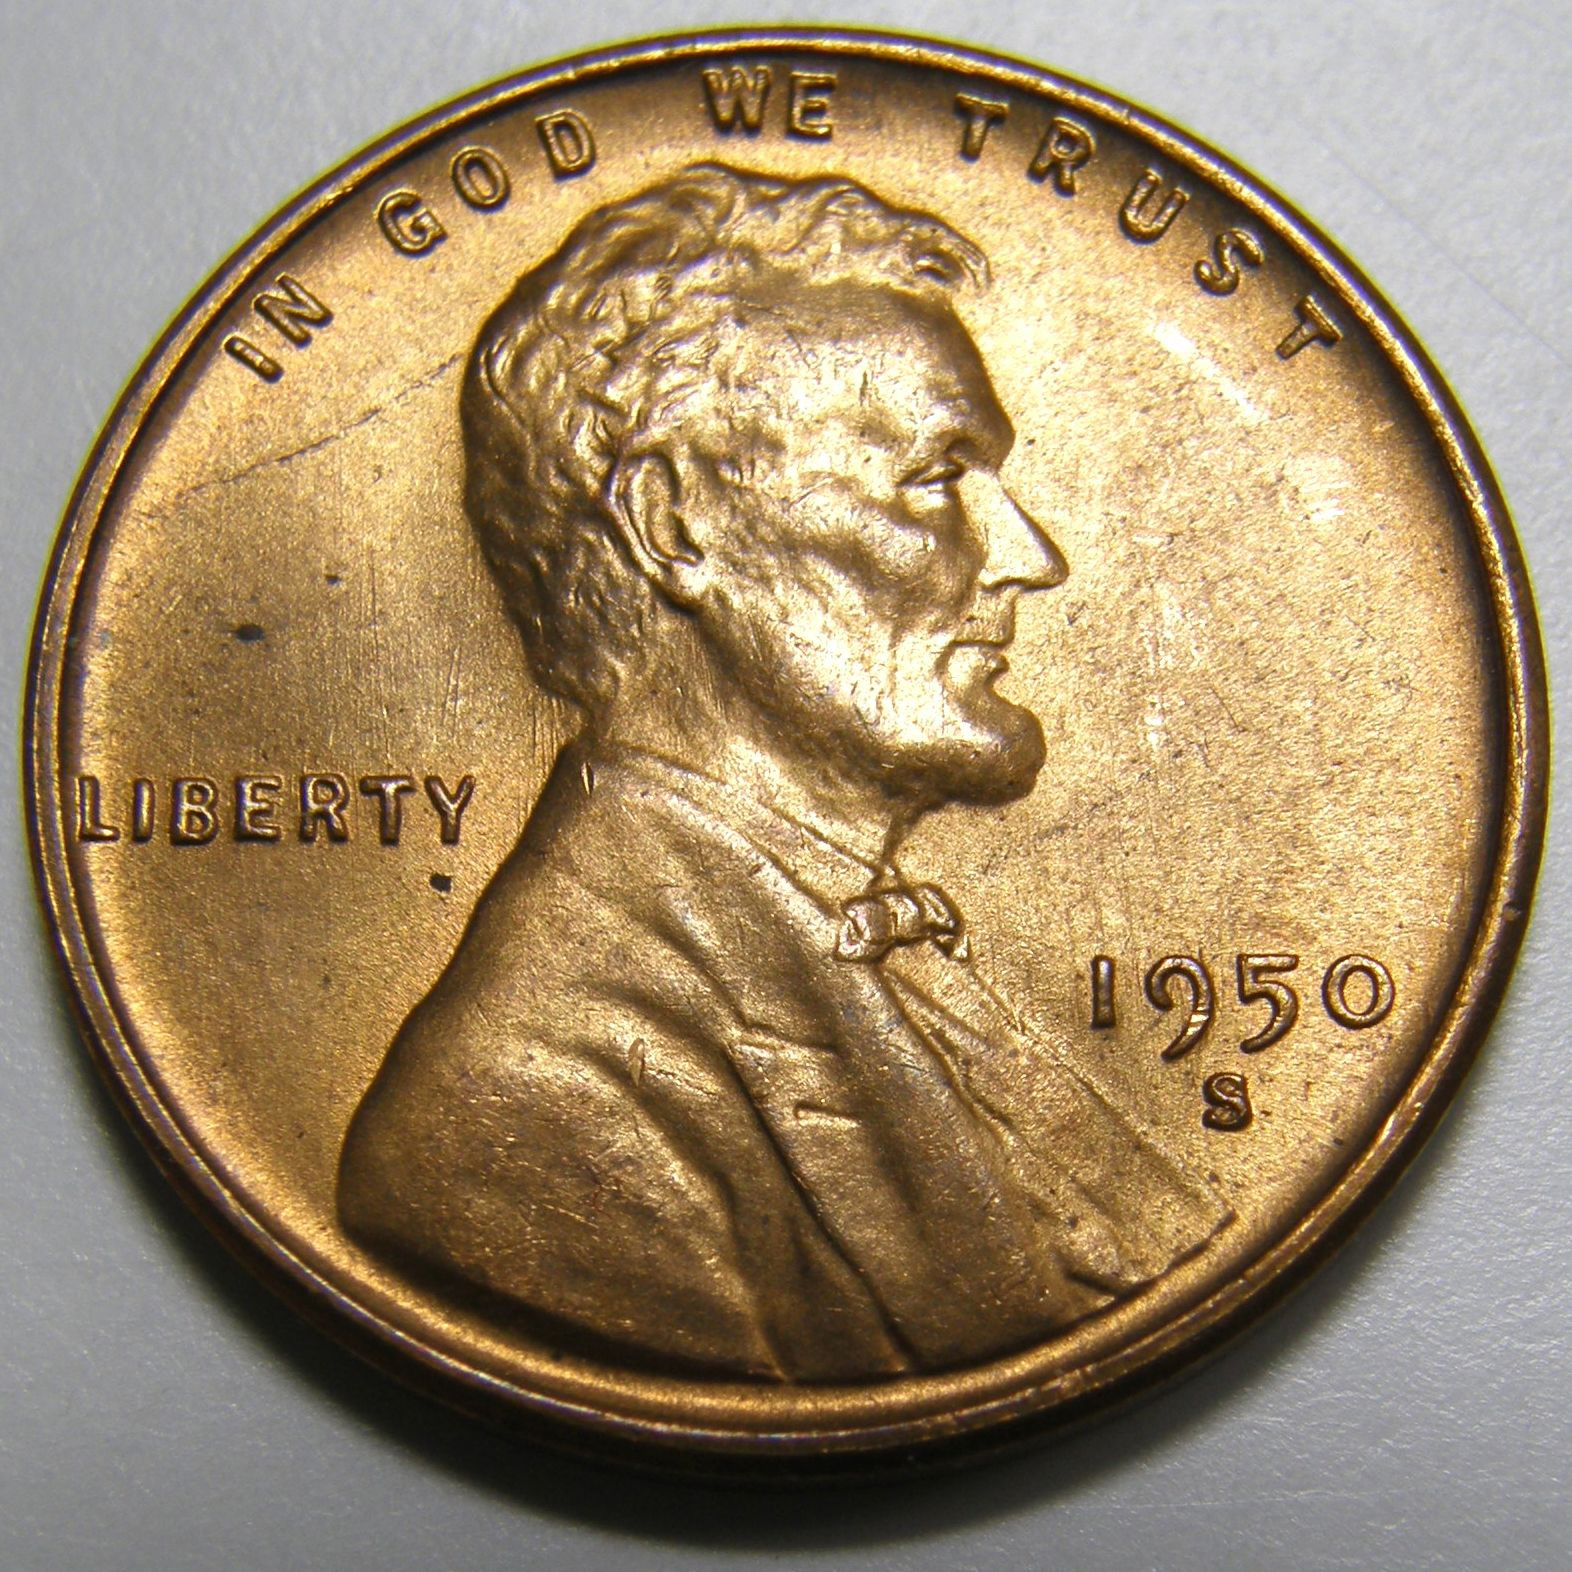 Luxury 1950 S Lincoln Wheat Cent 3 for Sale now Online Wheat Penny Prices Of Adorable 50 Pics Wheat Penny Prices